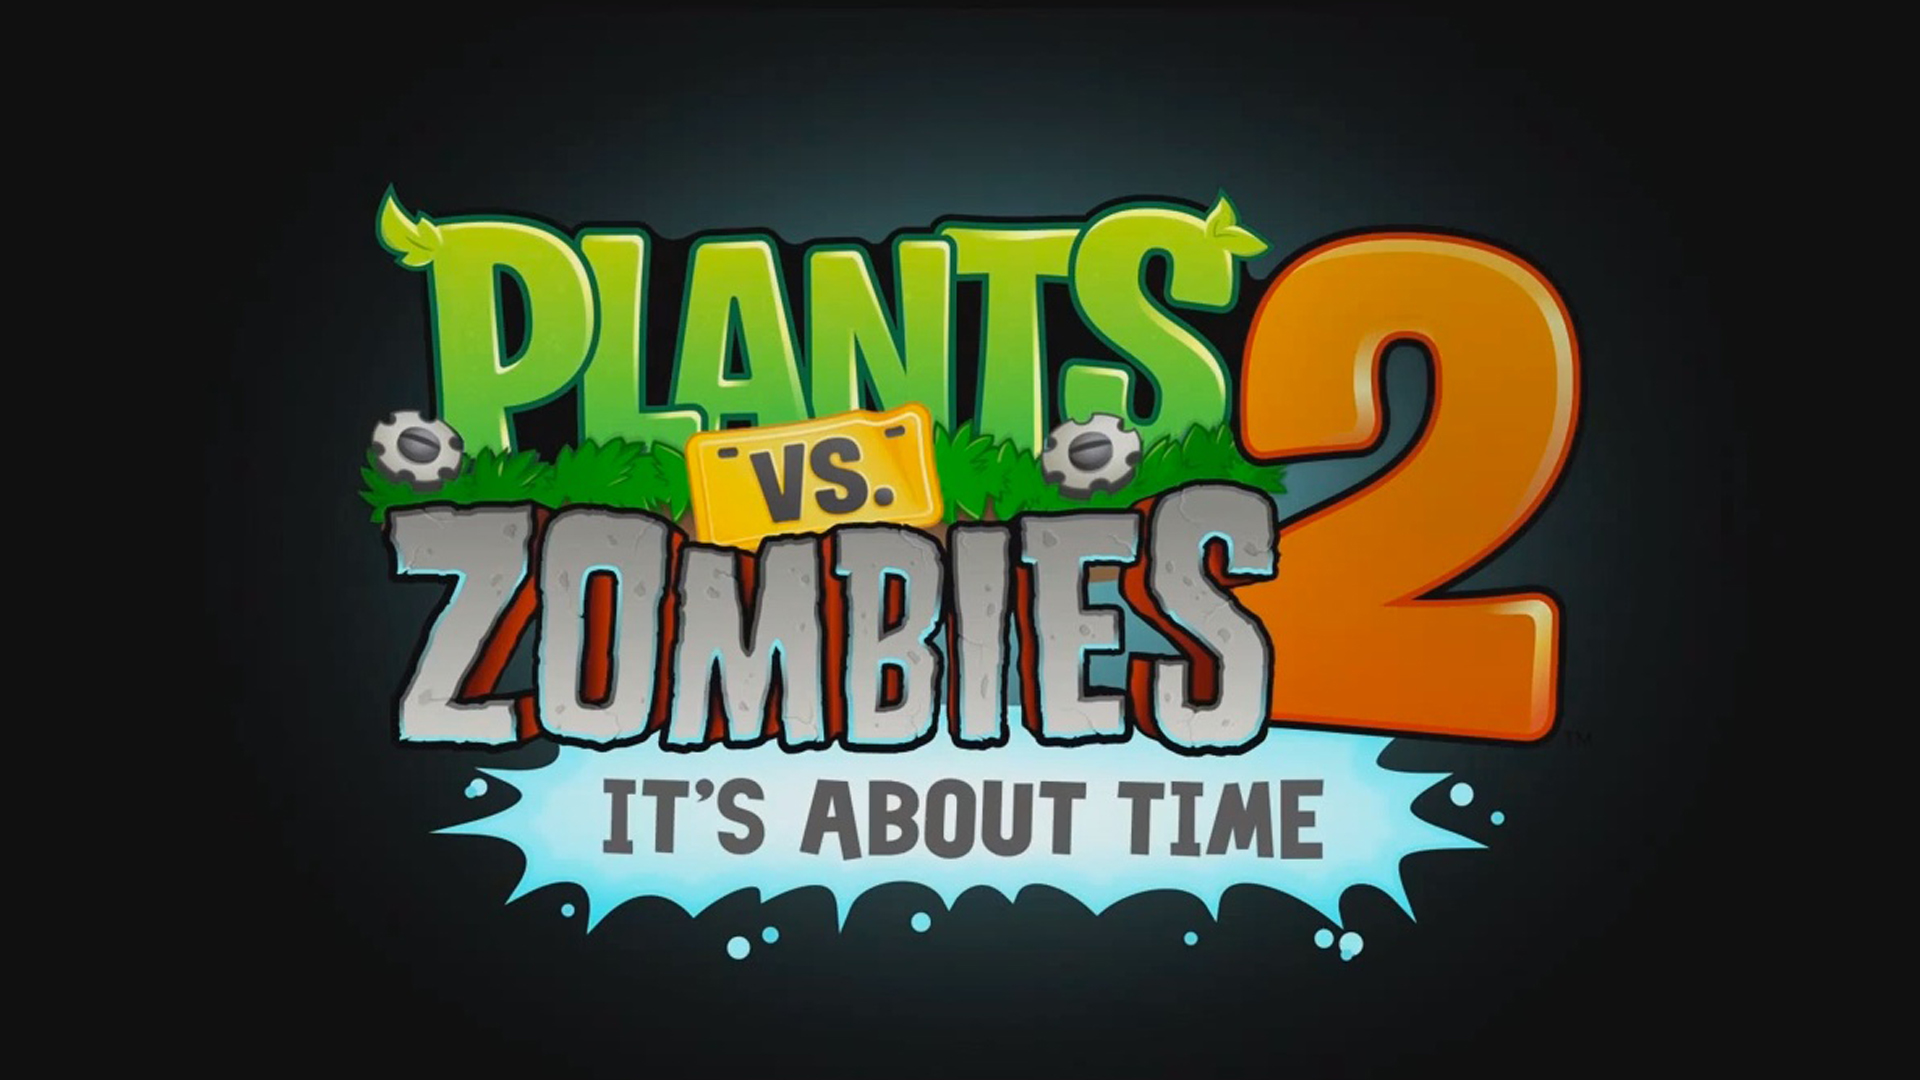 Plants Vs Zombies 2 Wallpapers Posted By Ryan Cunningham